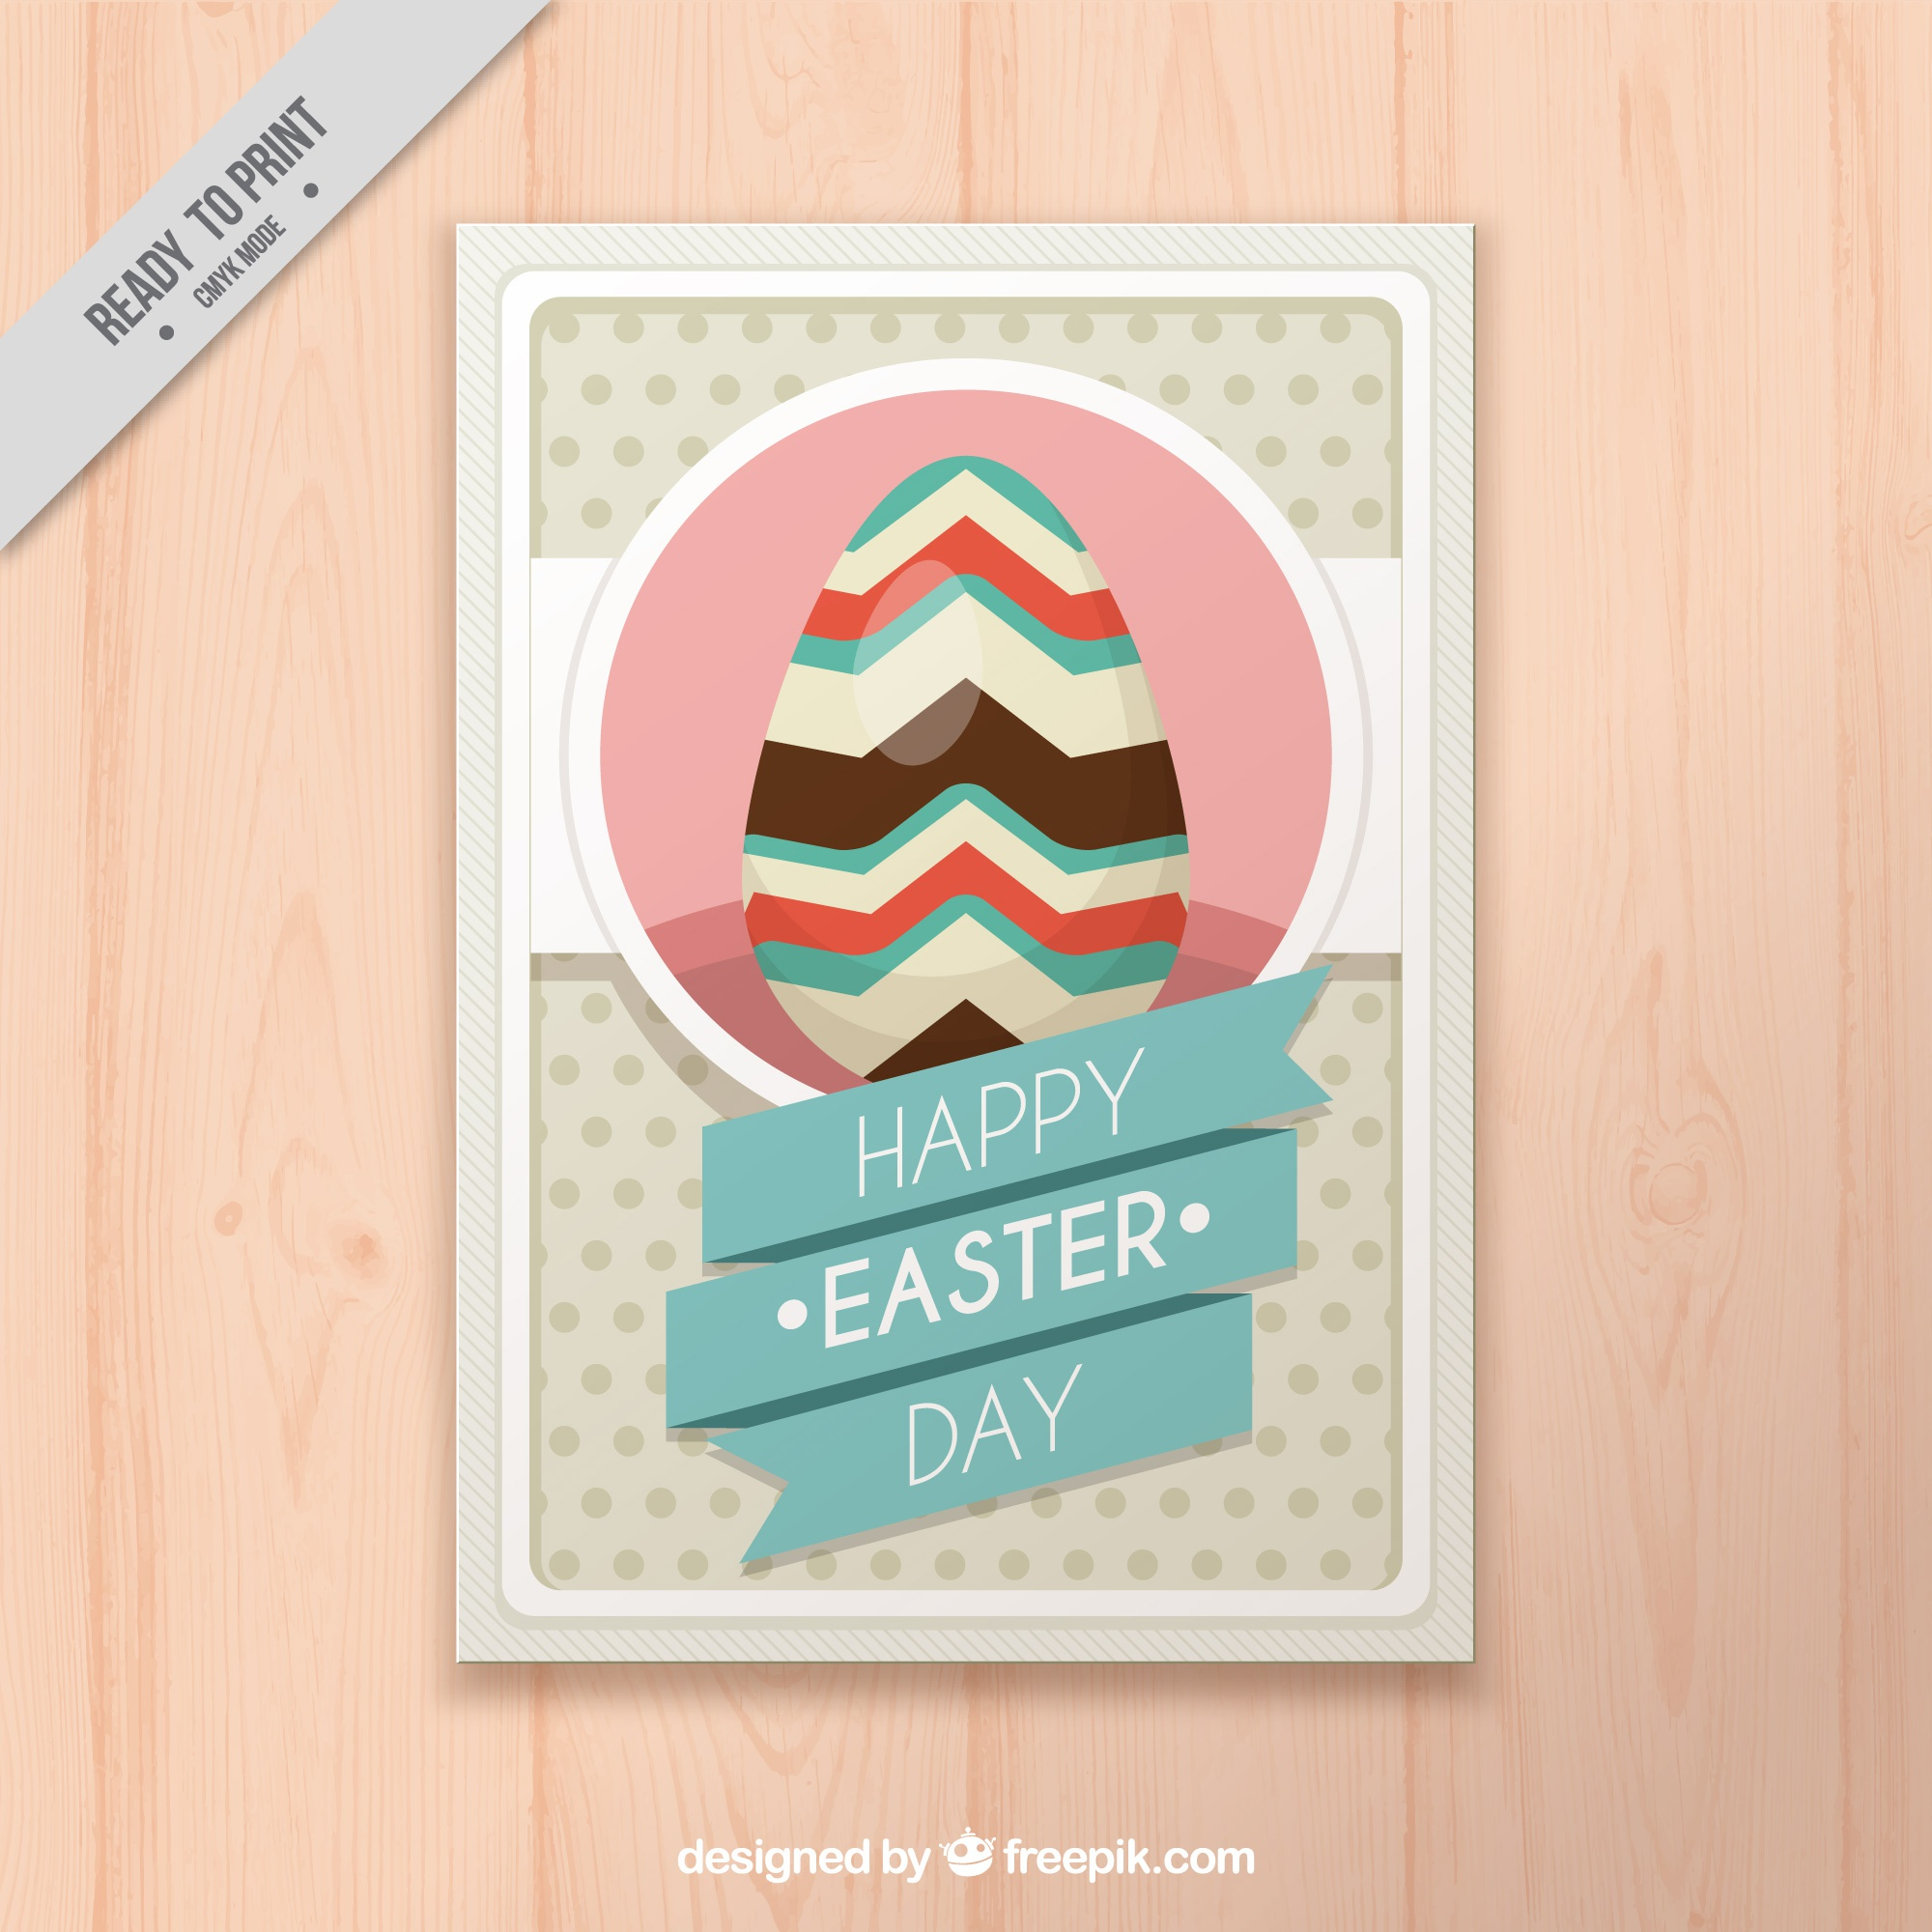 Vintage greeting card with easter egg